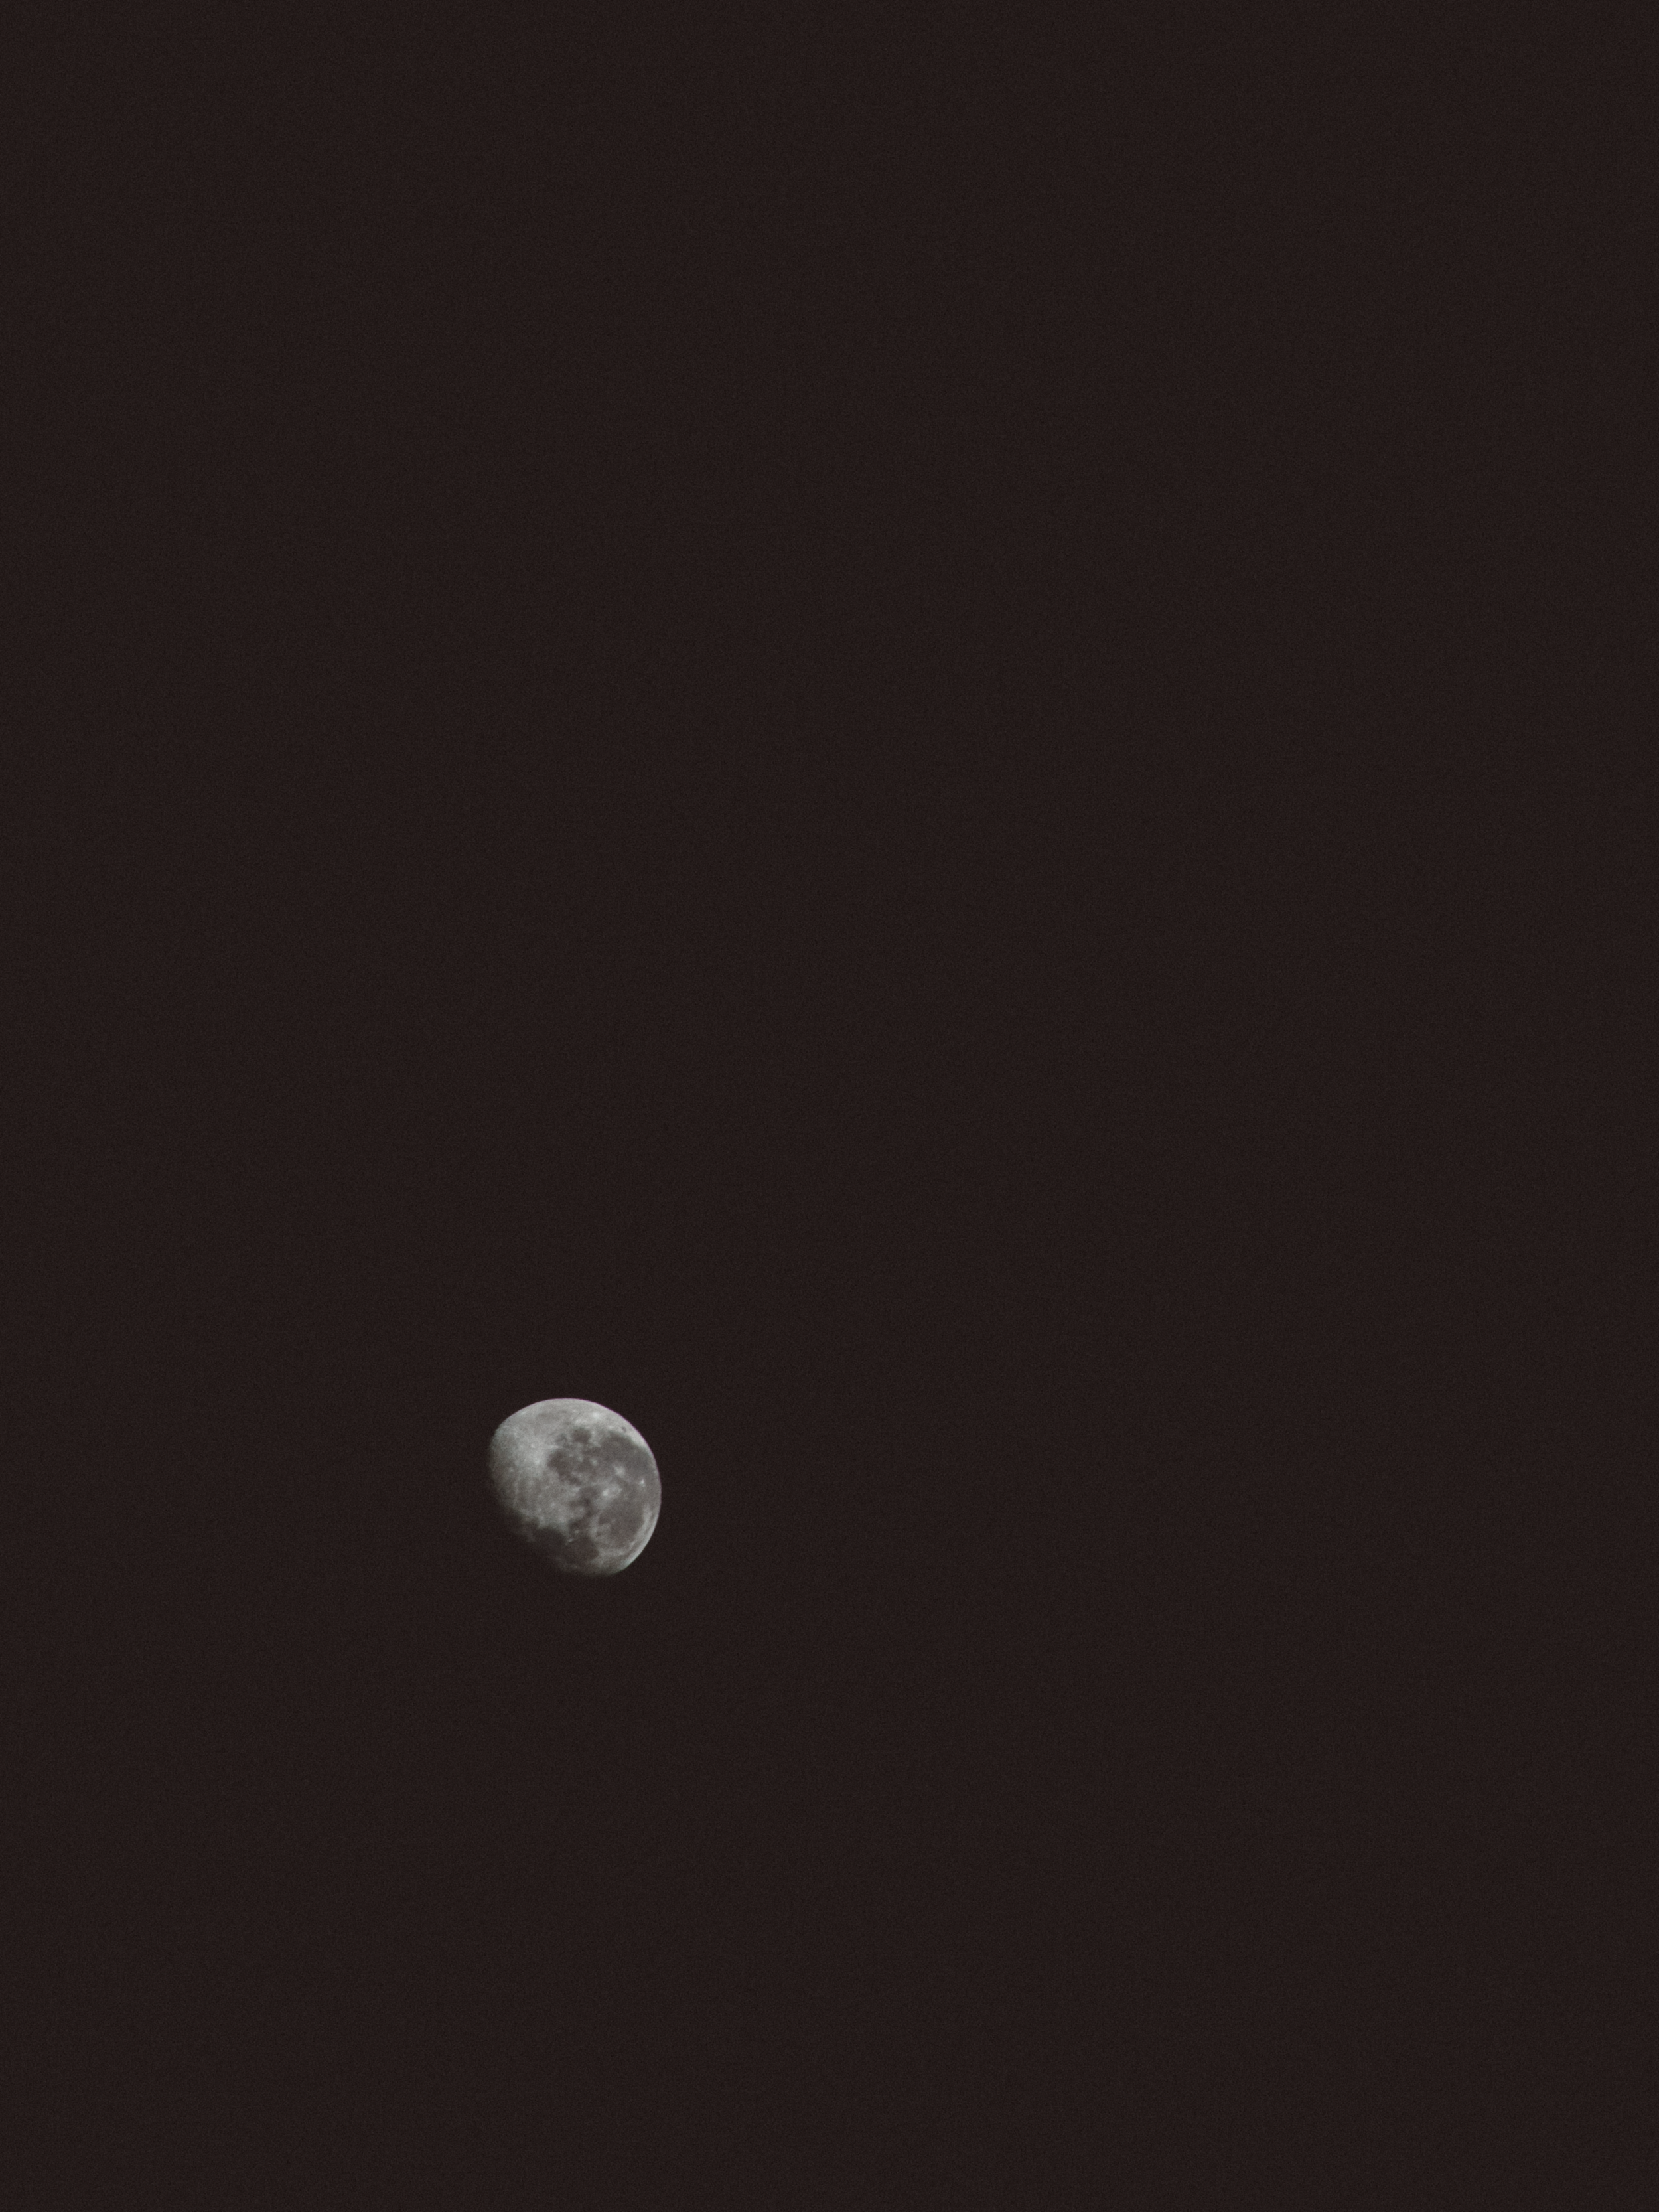 The magnificent moon